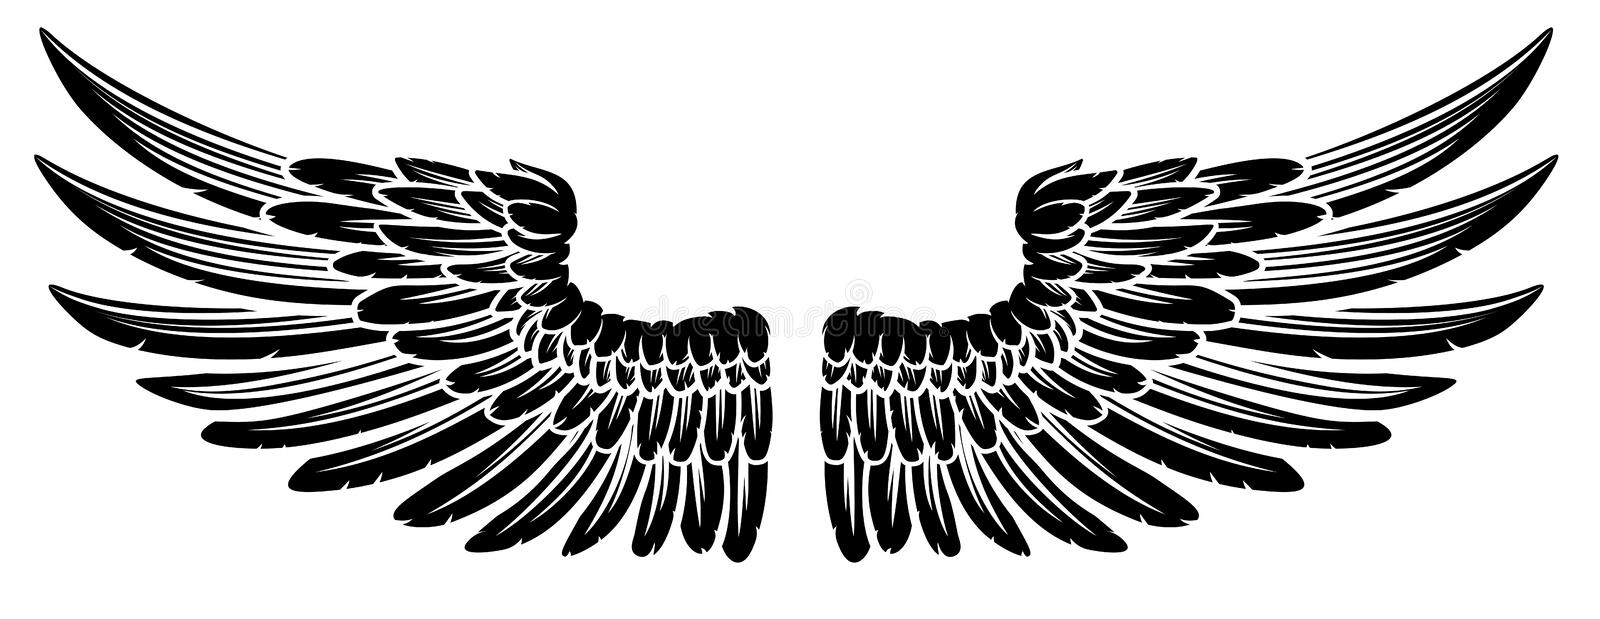 Pair of Vintage Style Wings royalty free illustration